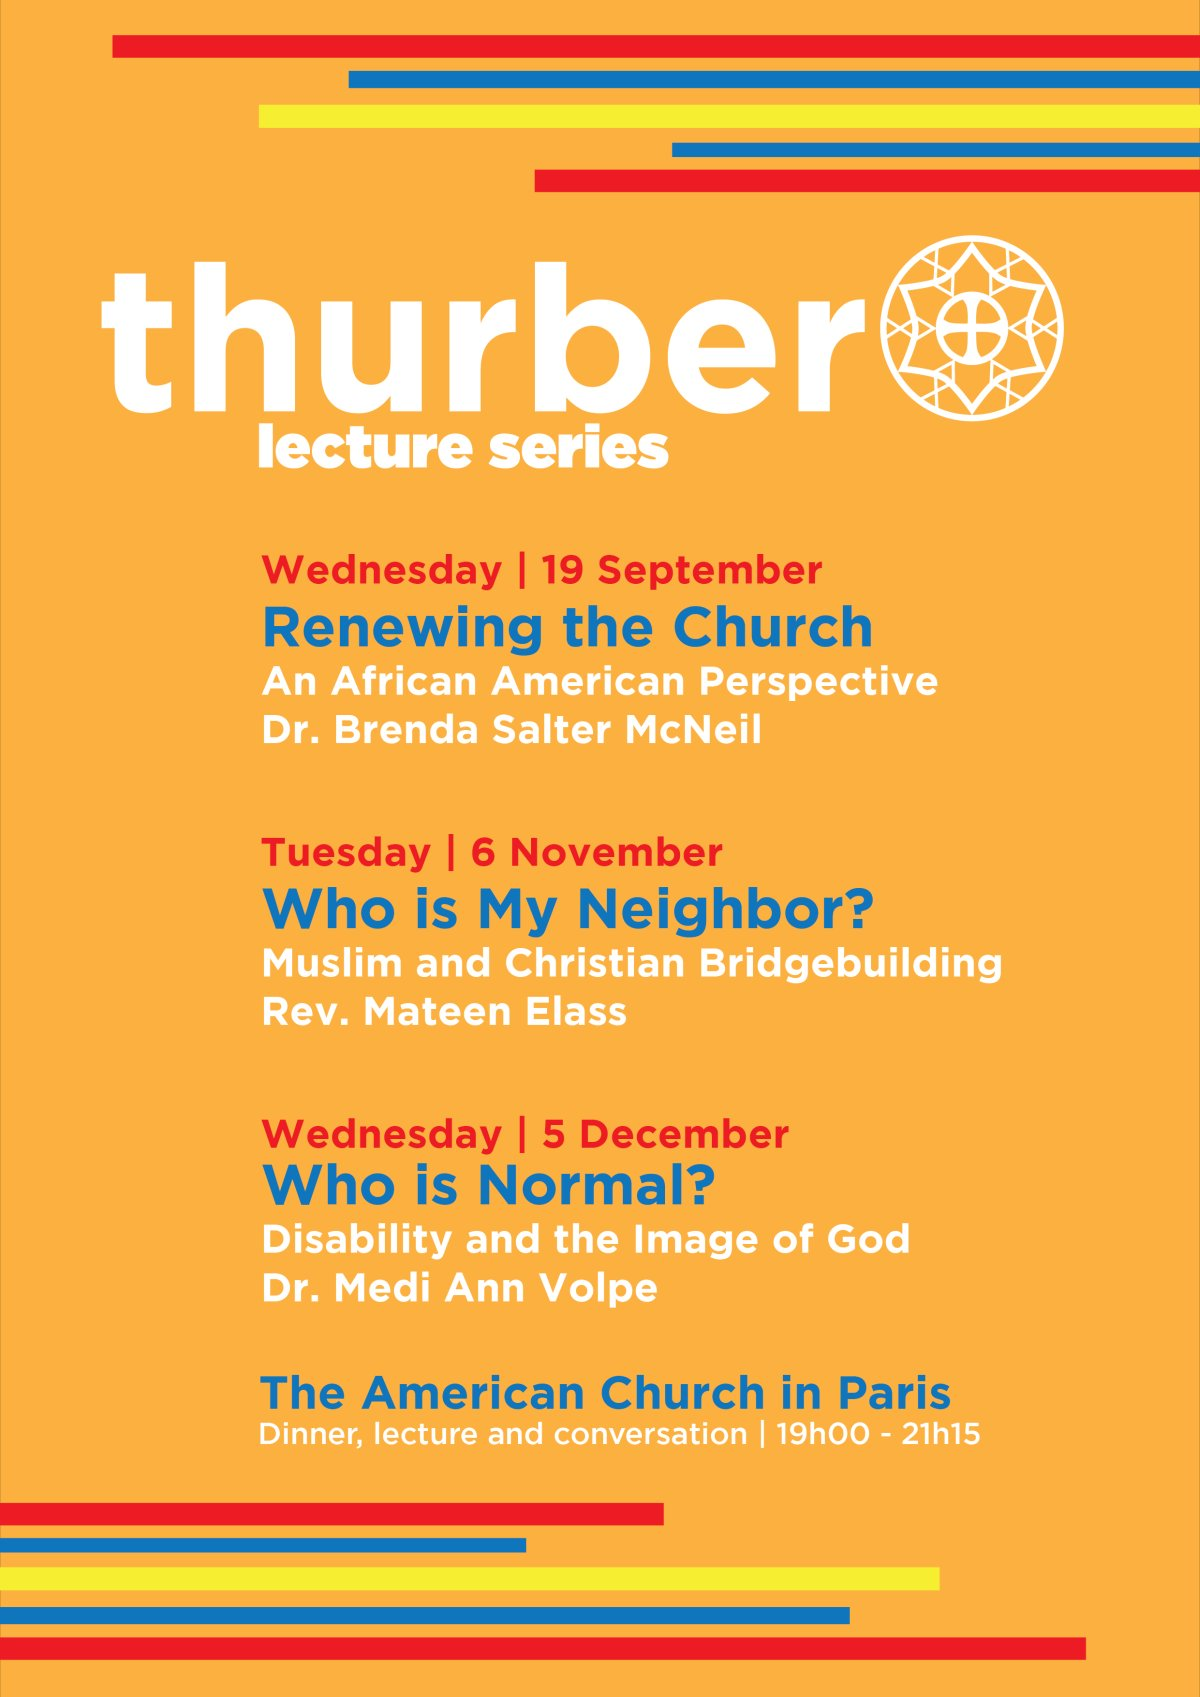 Thurber Lectures Autumn 2018